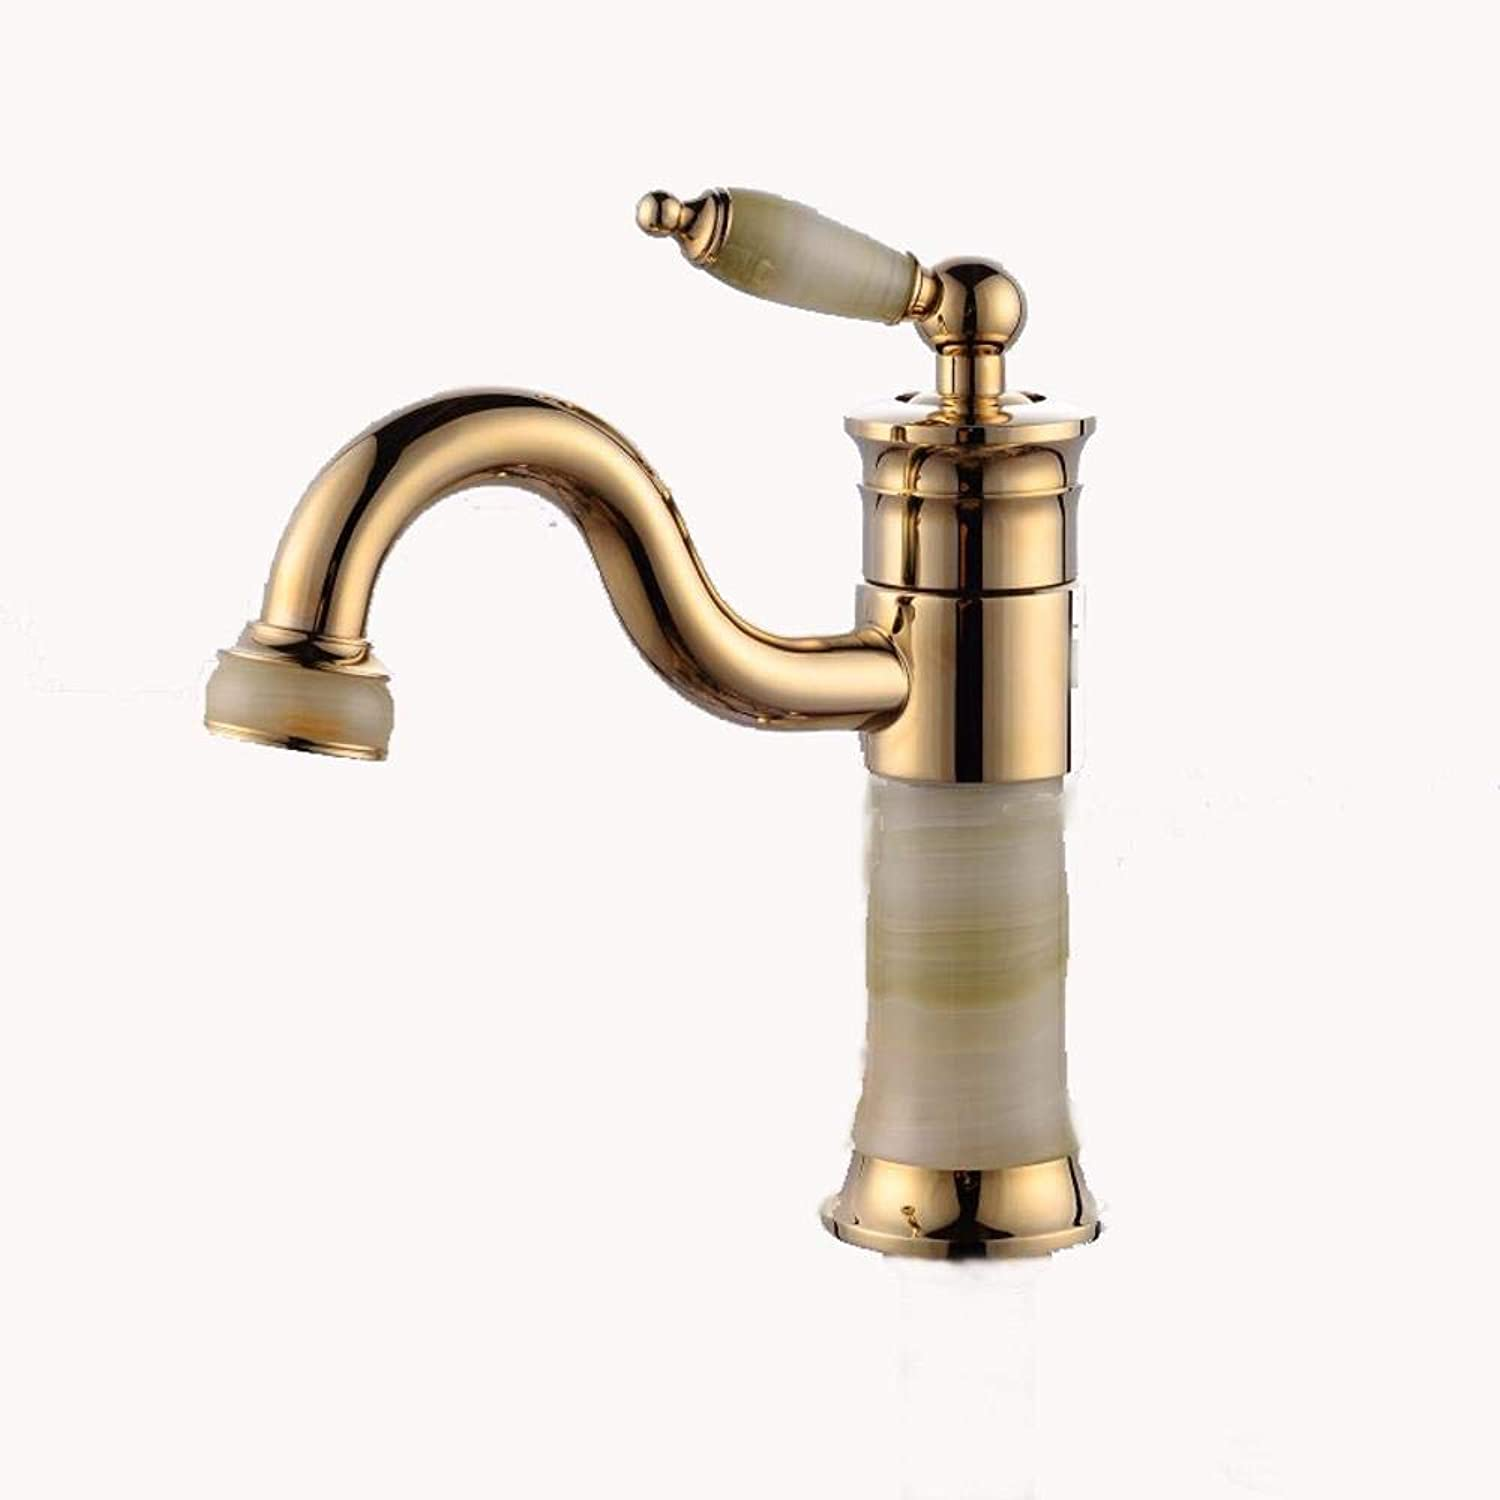 Lxj Faucet decoration building Materials water-heating table swivel basin faucet